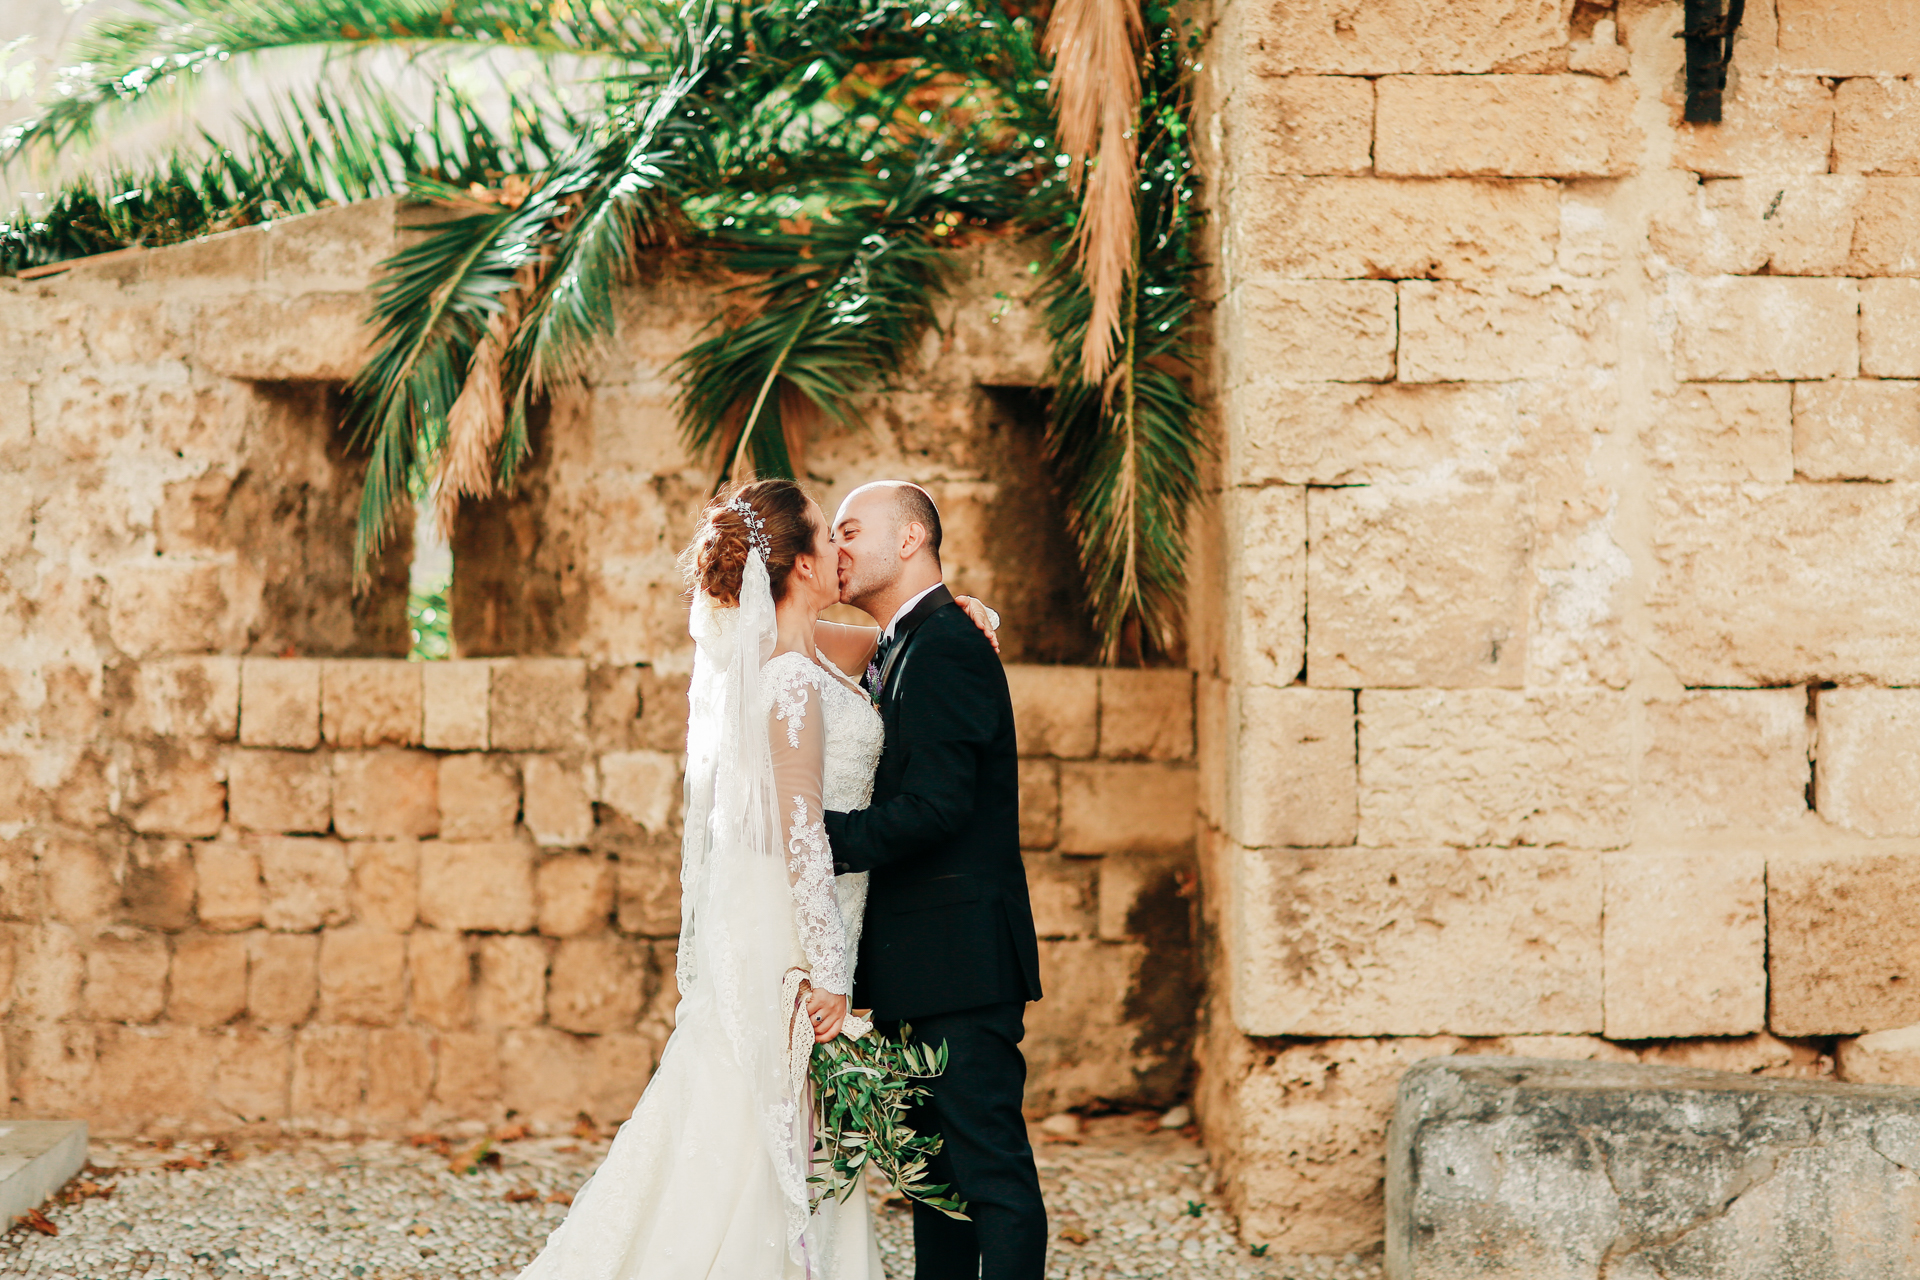 Greece Wedding Photographer, Picture of the Couple Kissing | vibrant palm fronds in Rhodes frames the newlyweds as they share a kiss